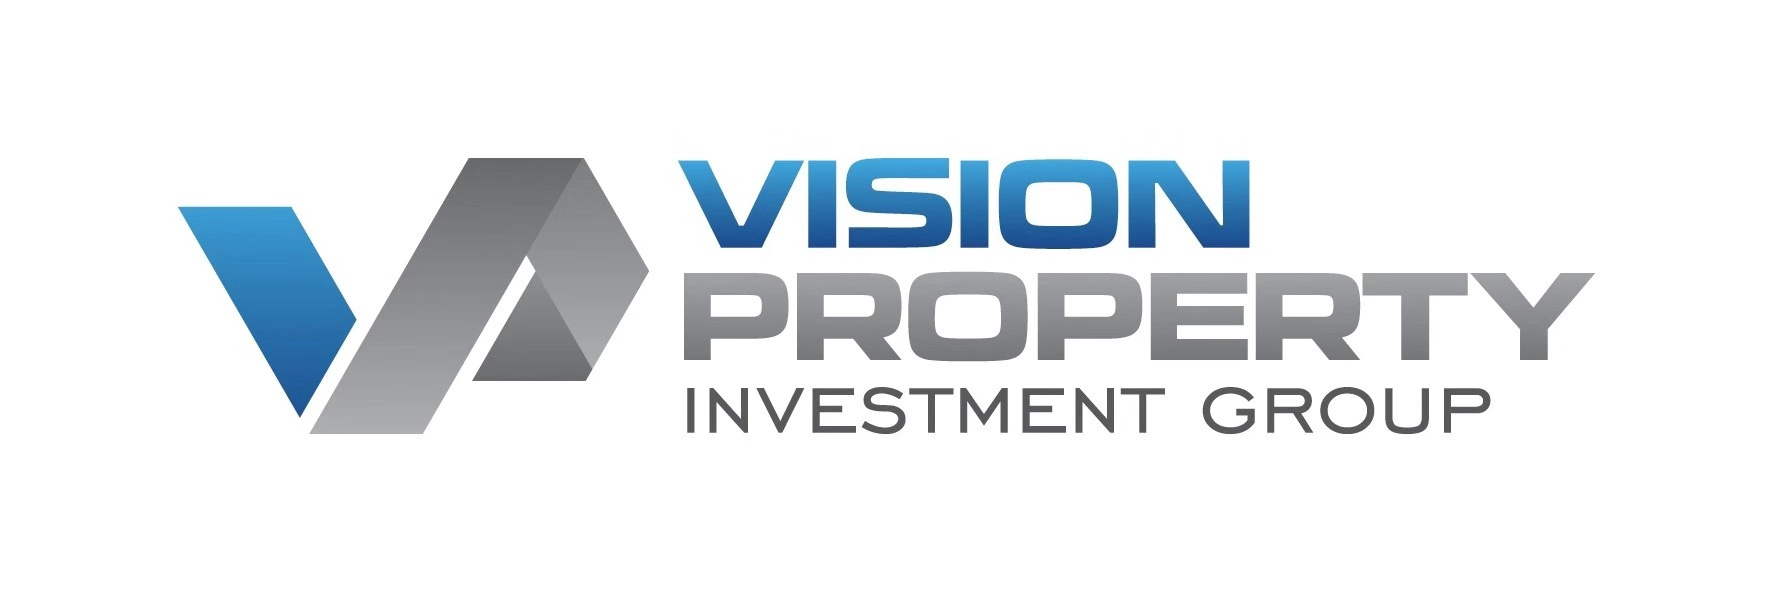 Vision Property Investment Group - Canberra